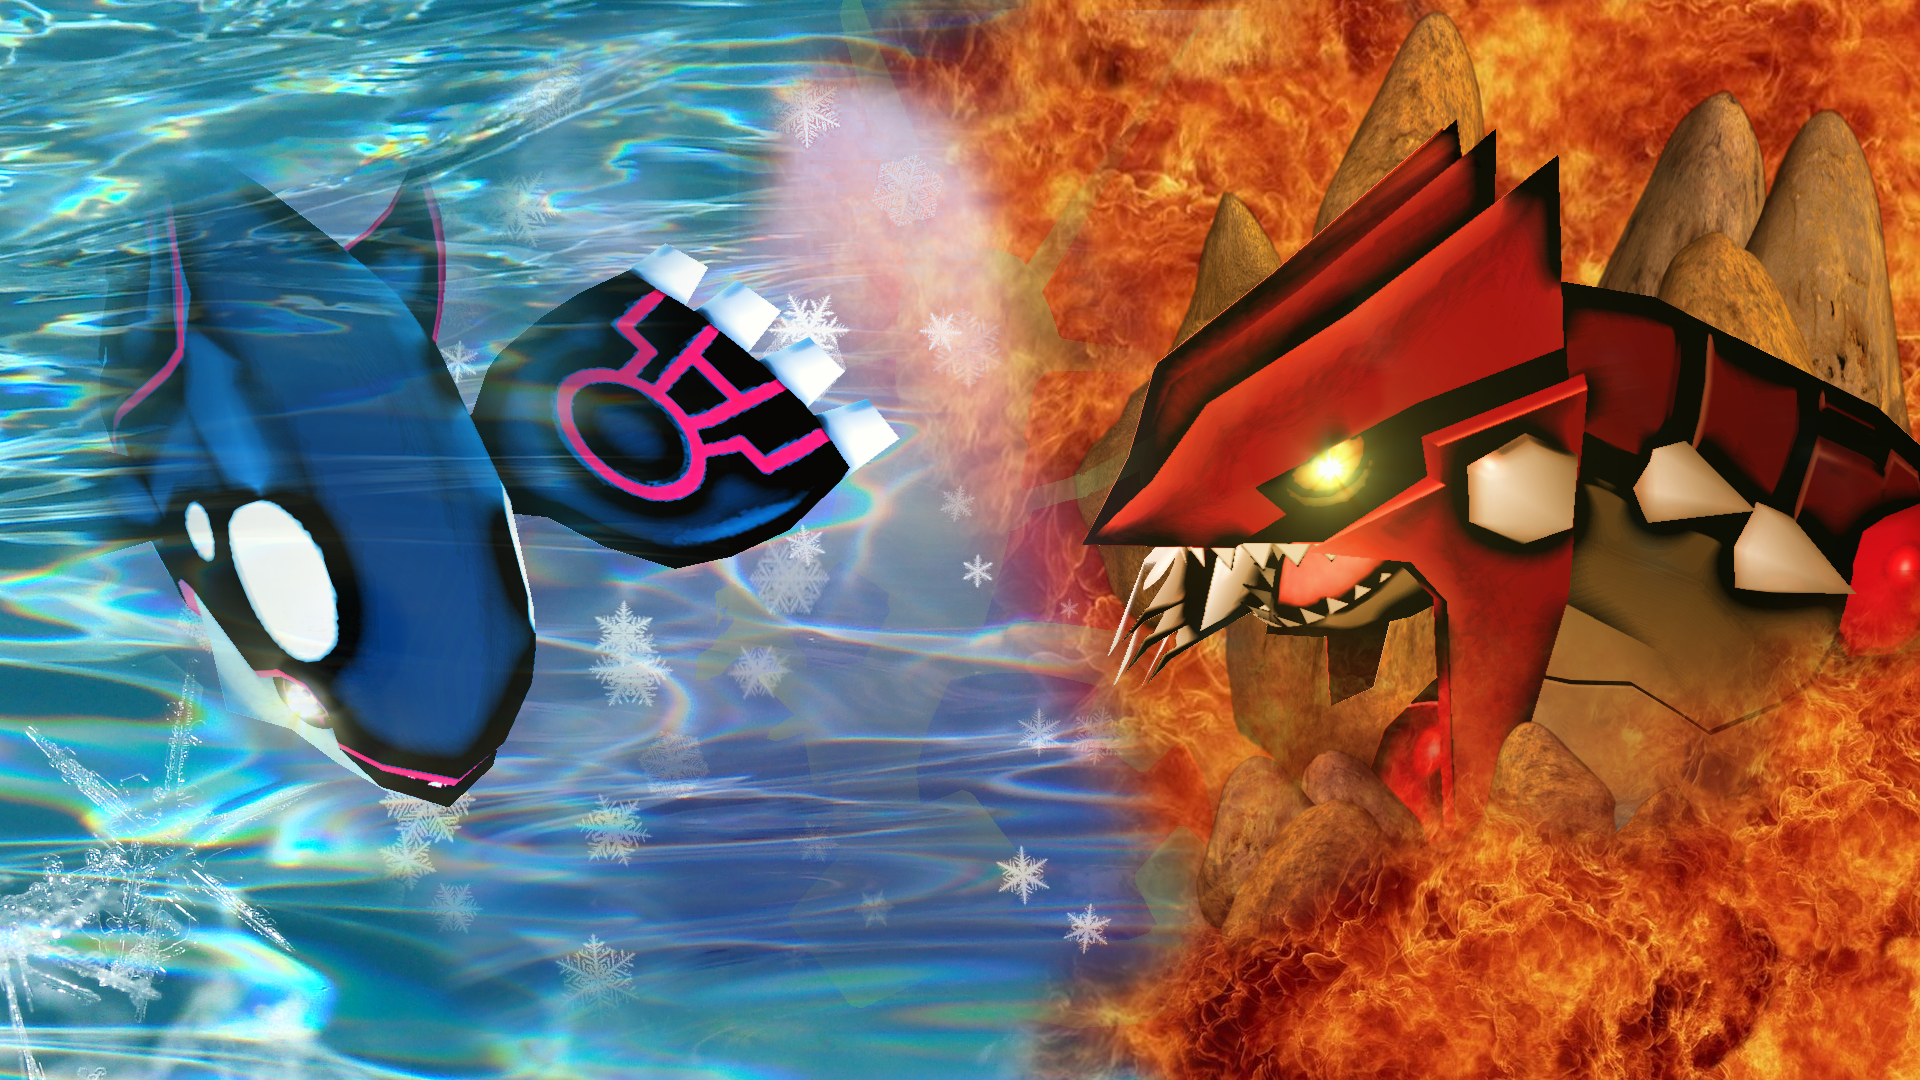 Primal groudon and kyogre wallpaper wallpapersafari - Pictures of groudon and kyogre ...